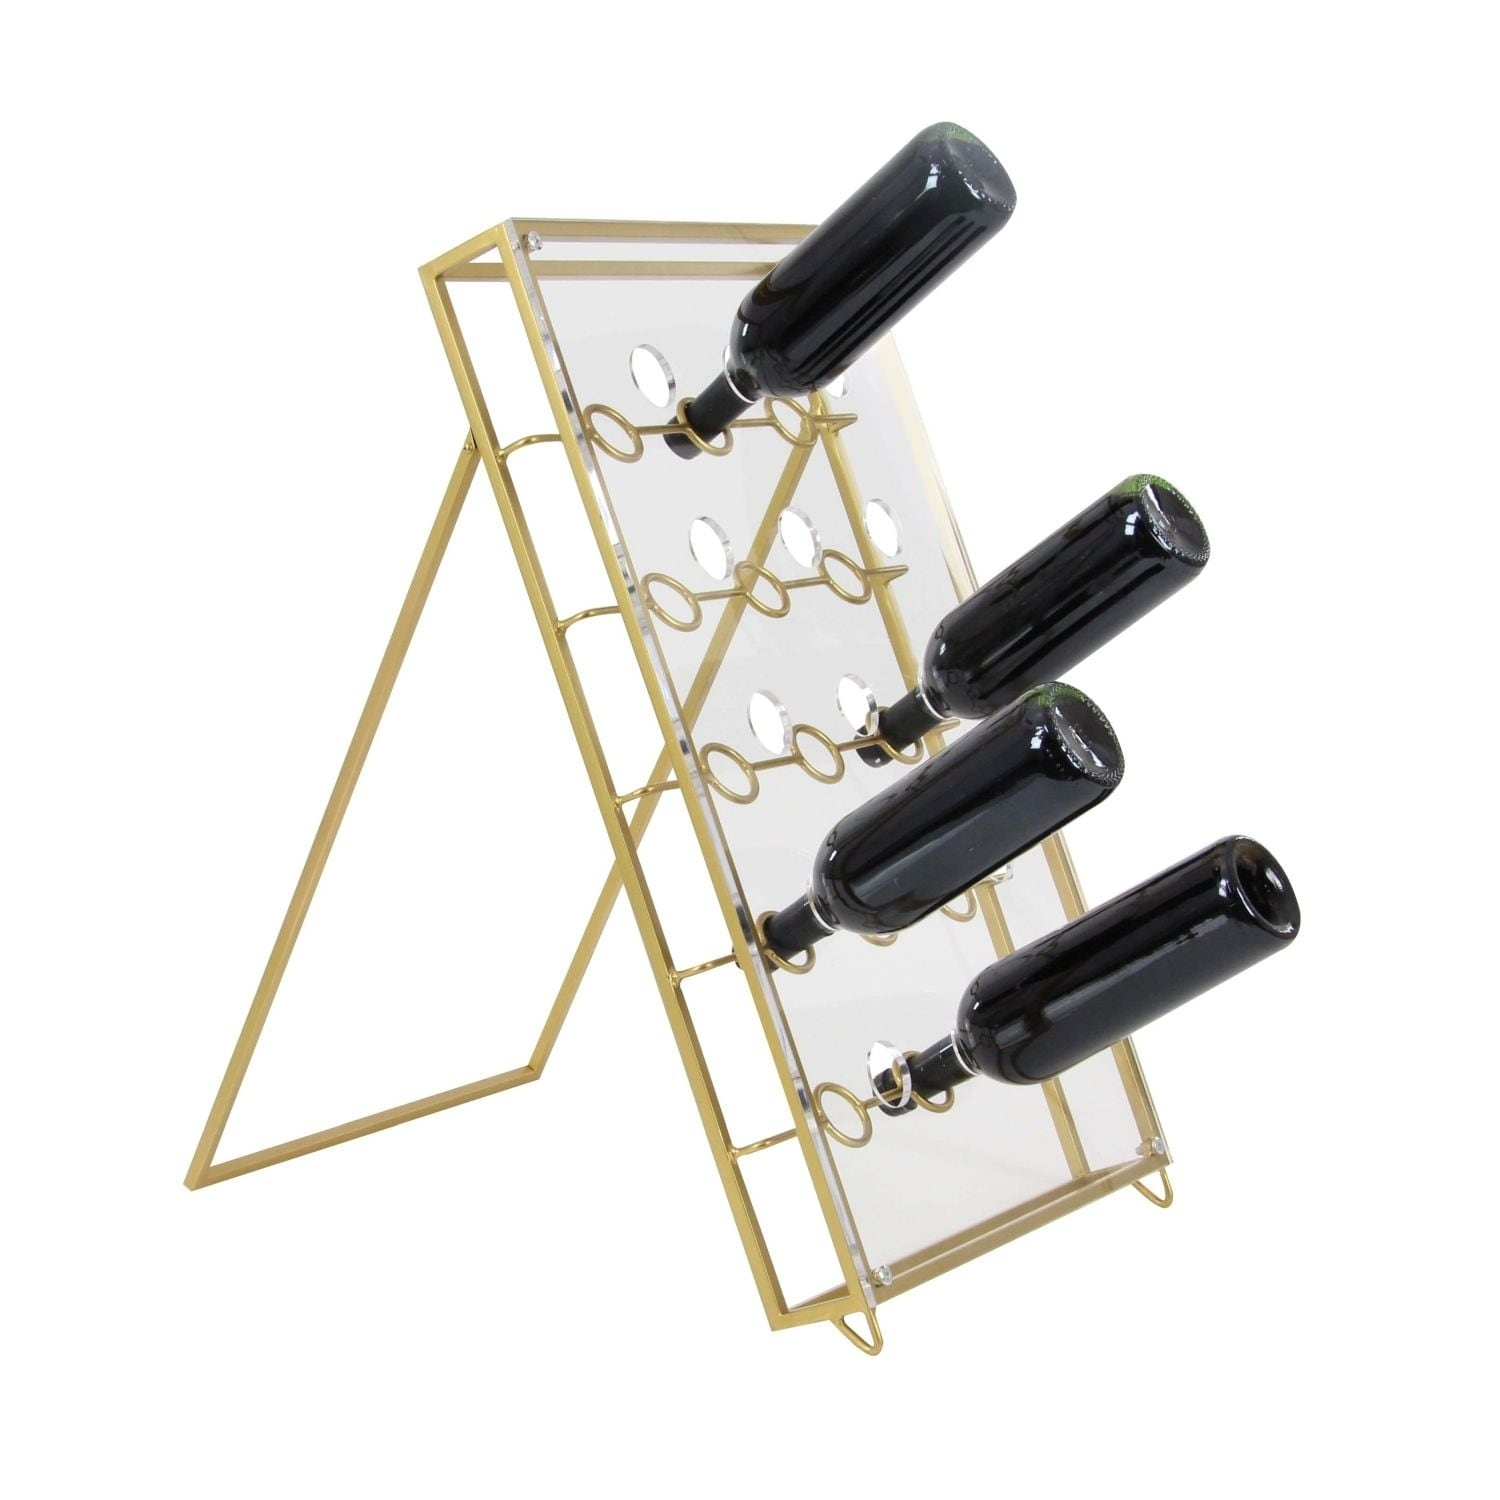 Studio 350 Metal Acrylic Wine Holder 15 inches wide, 24 inches high